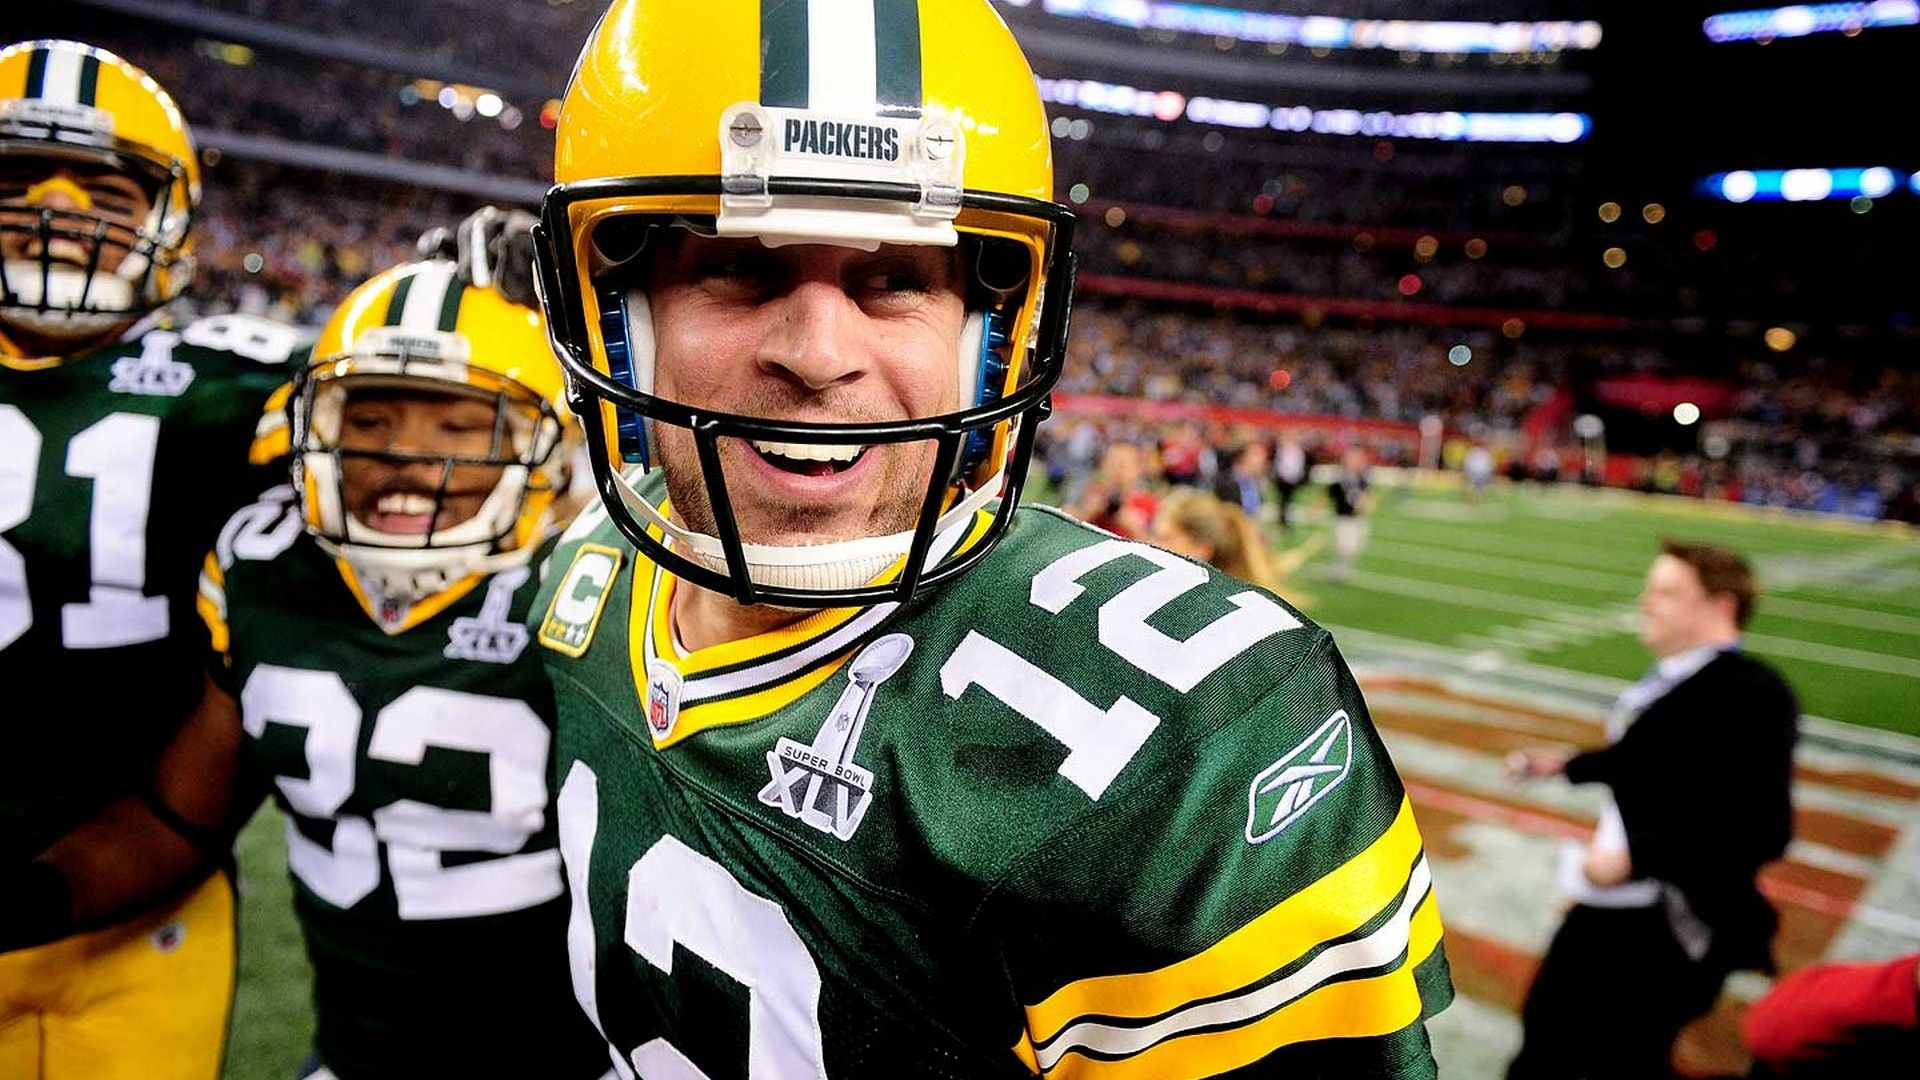 Hd Aaron Rodgers Wallpapers Nfl Football Wallpaper Superbowl Xlv Football